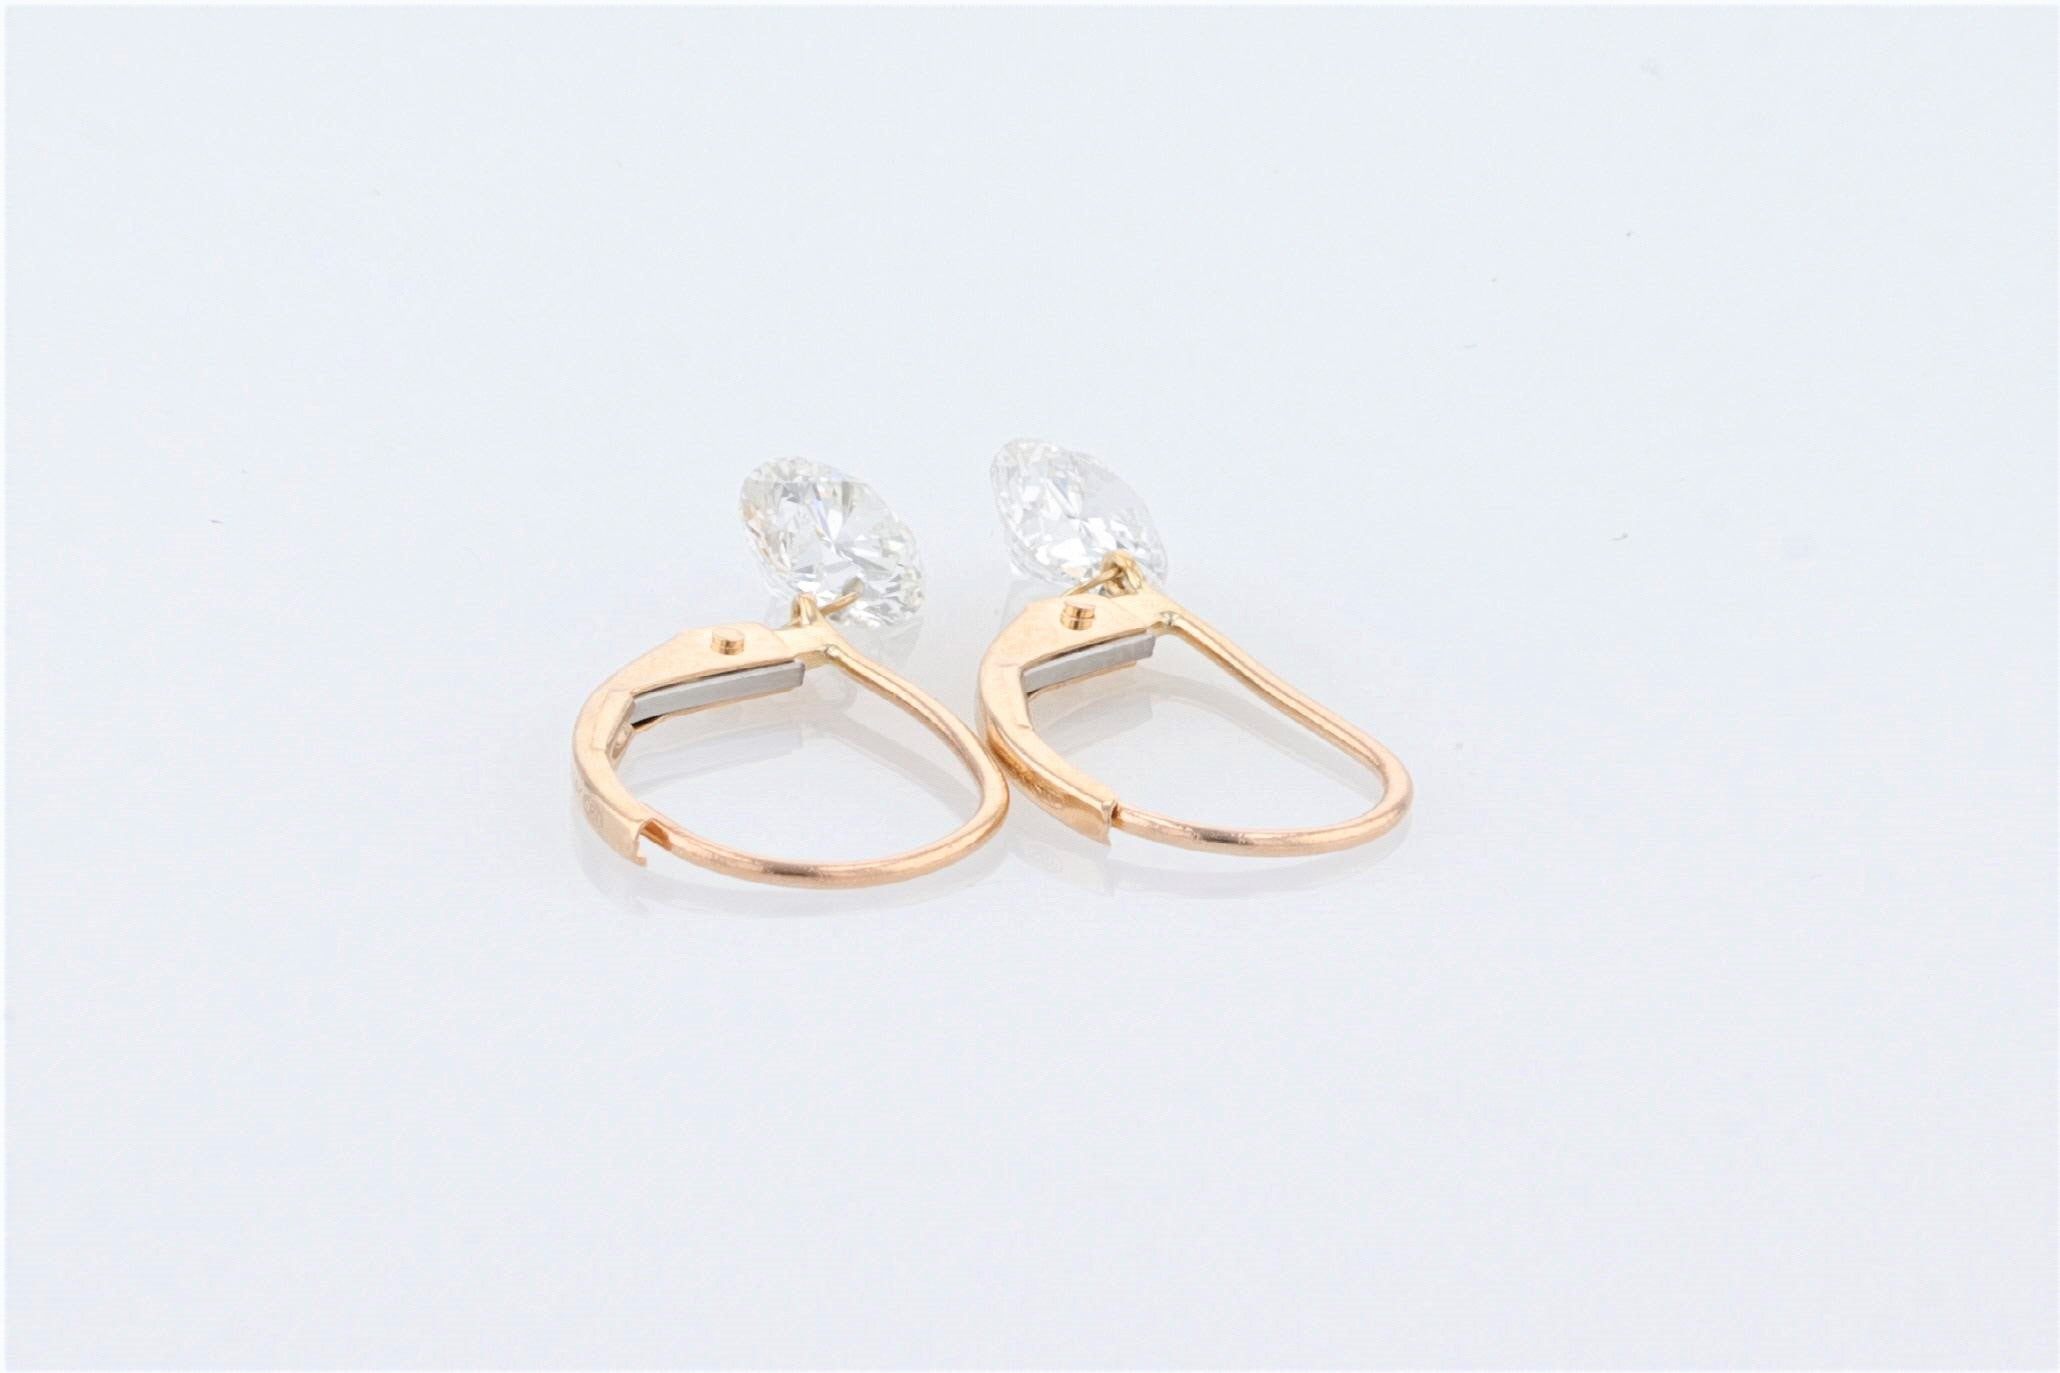 14K Women's Yellow Gold (Stamped) Dress Drop Earrings